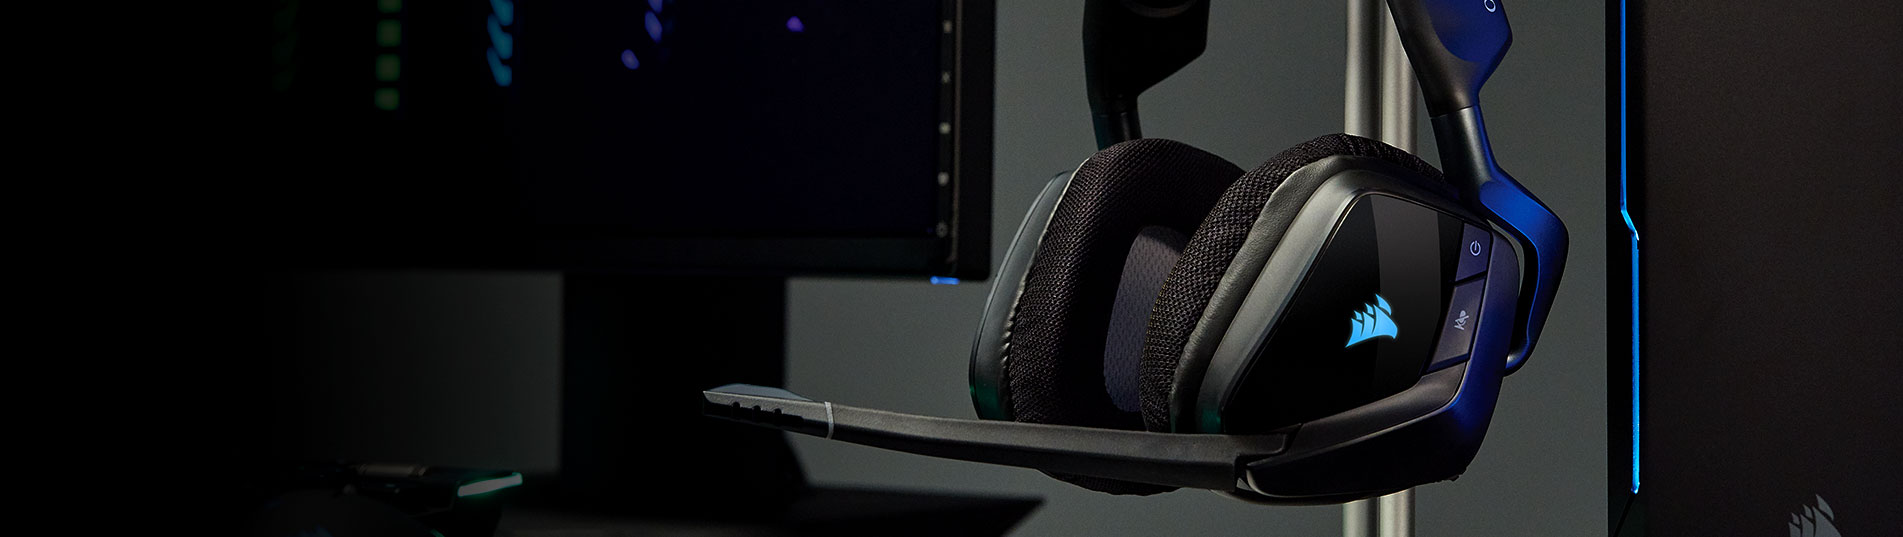 Gaming Headsets | CORSAIR